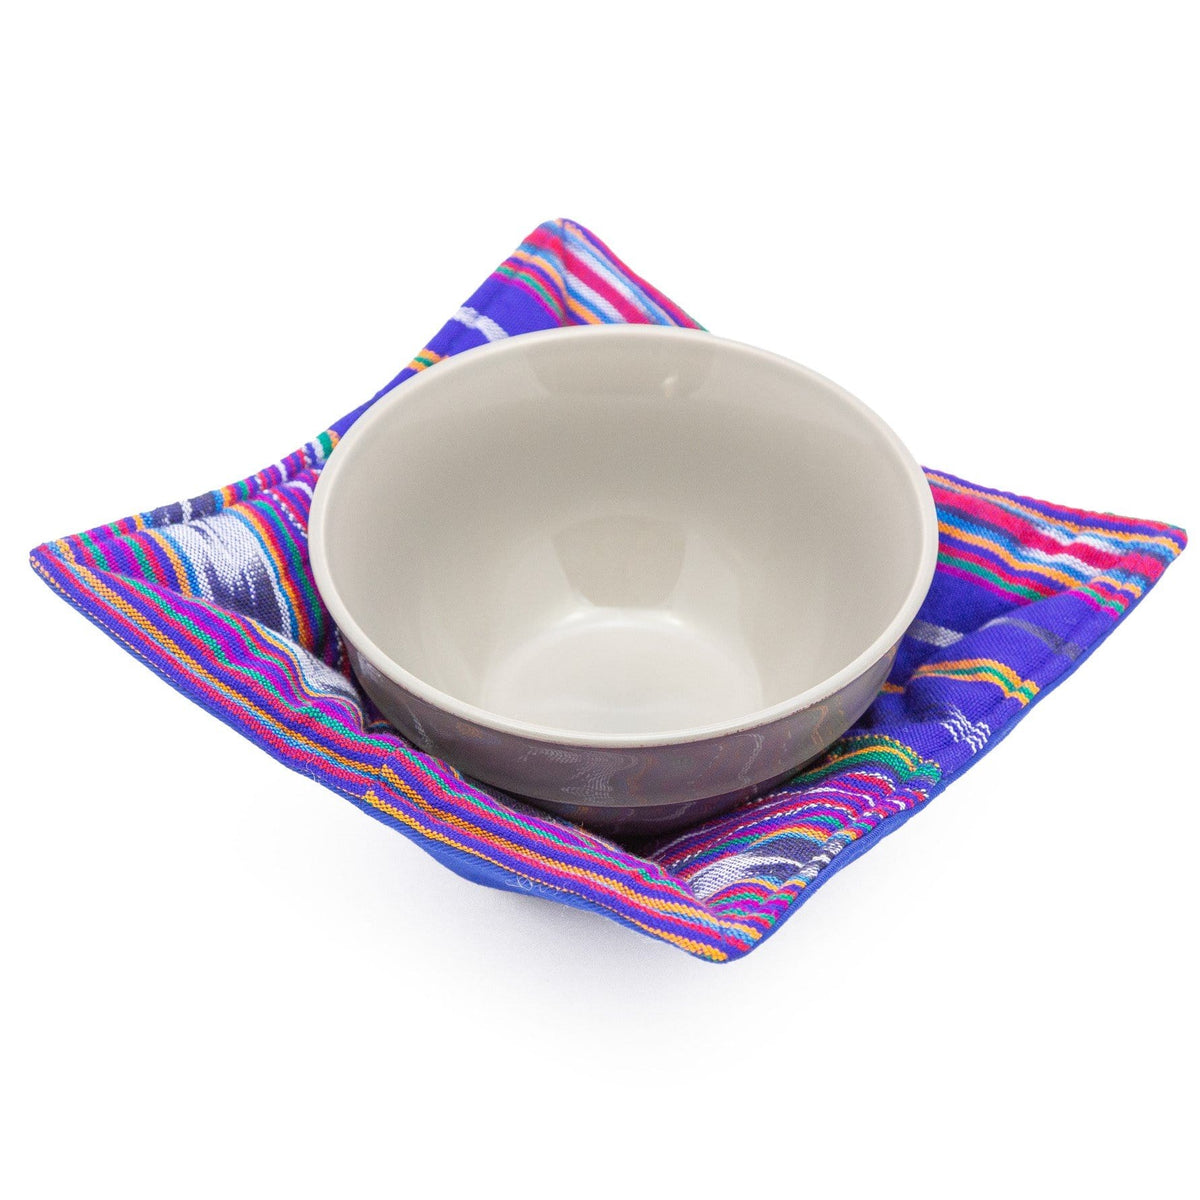 Microwave Bowl Cozy - Festive Blue